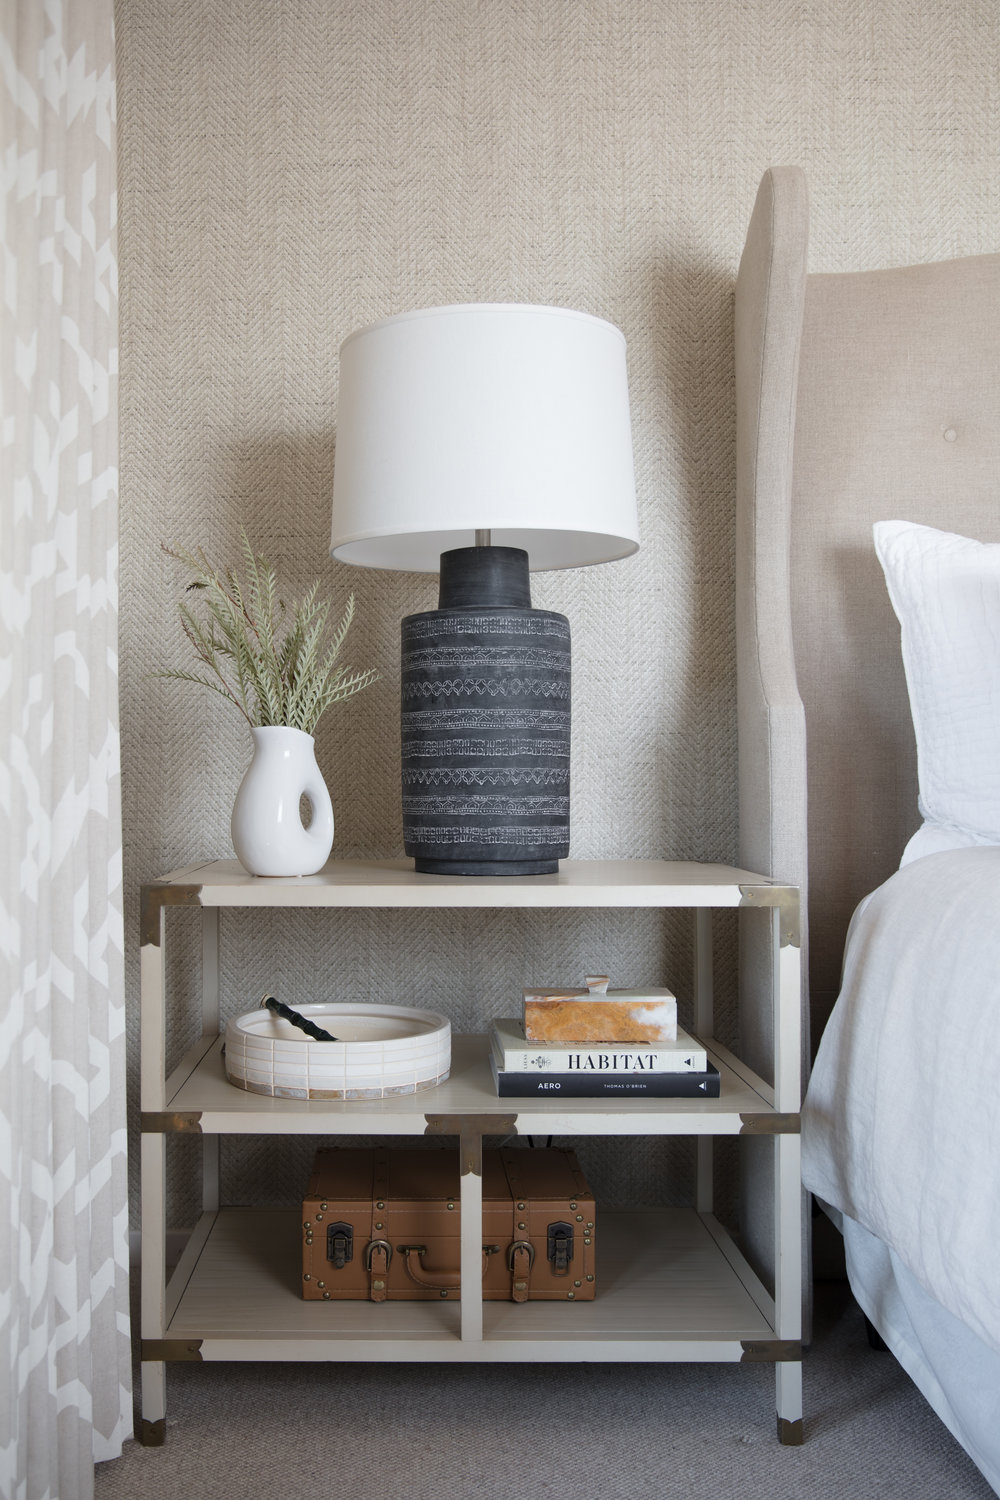 FletcherRhodes_upperguestroom-nightstand detail.jpg